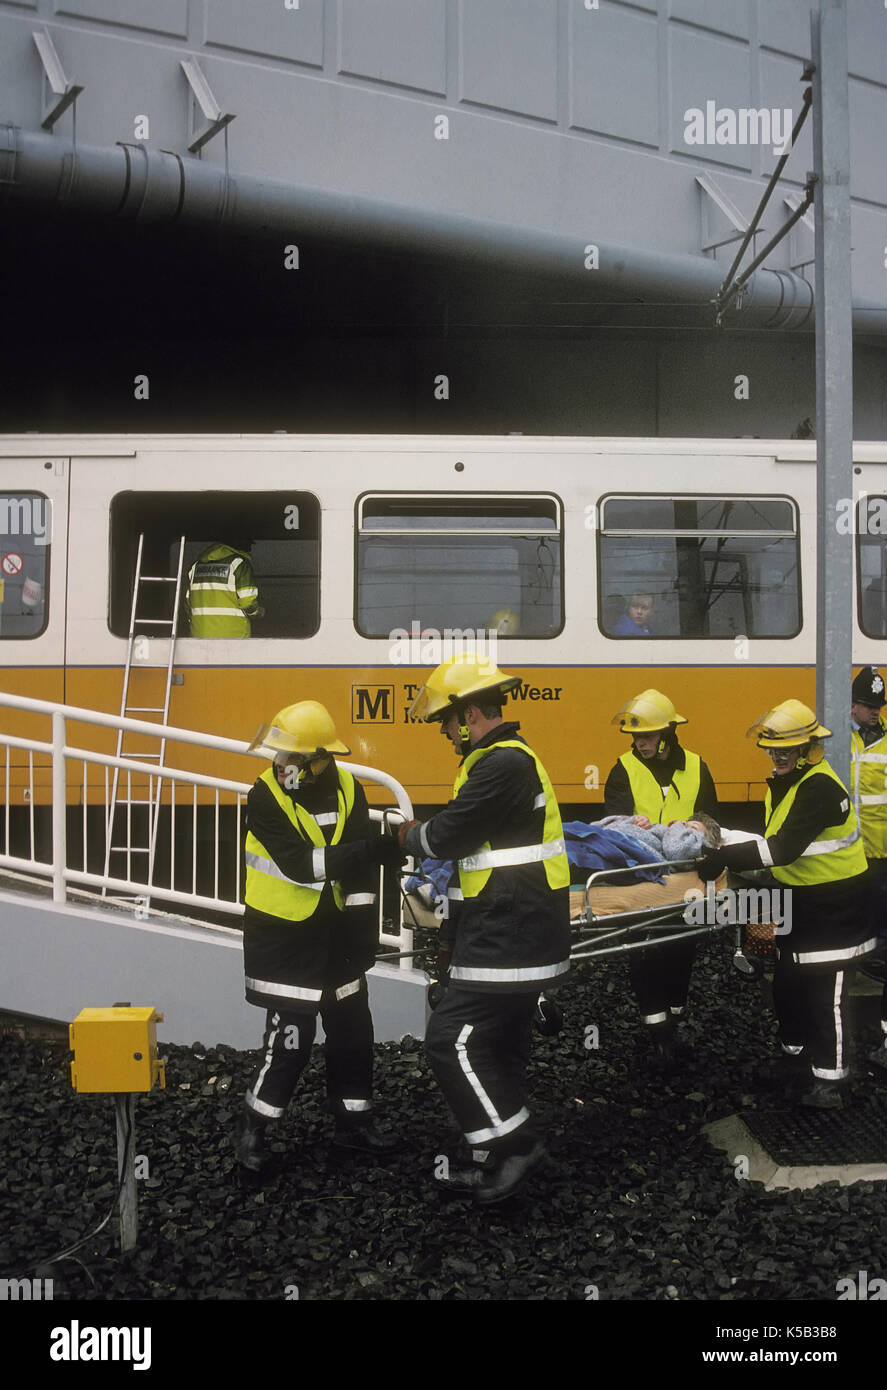 Emergency service at an exercise on the Tyne and Wear Metro system - Stock Image